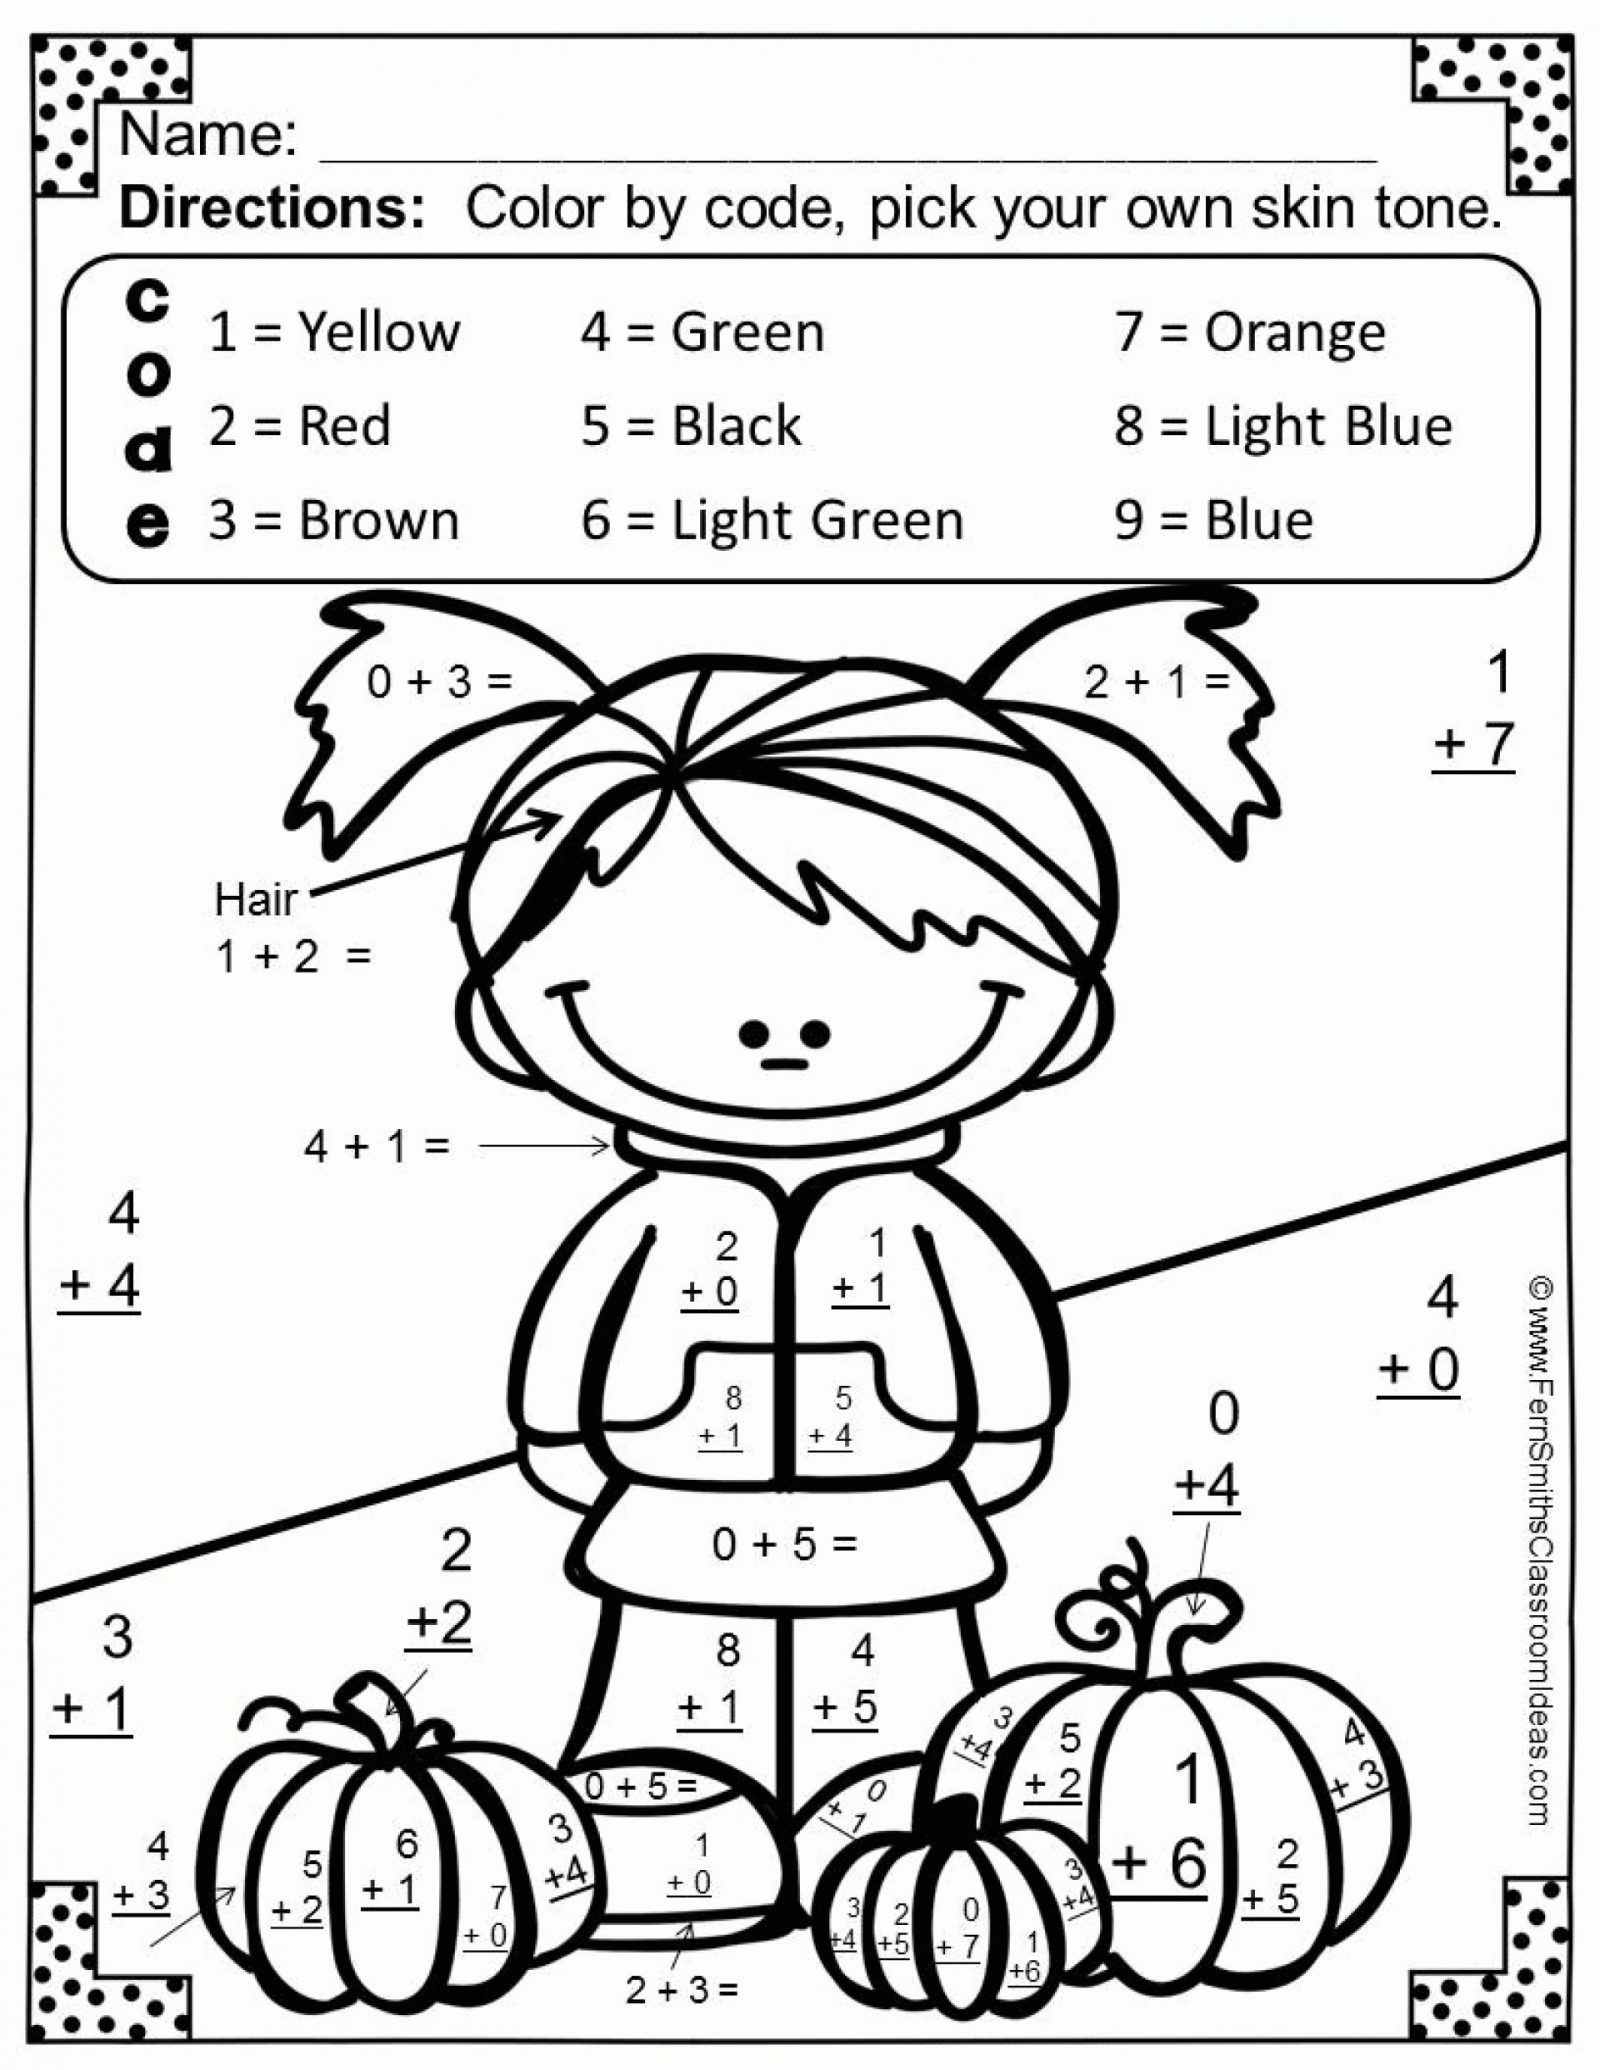 Worksheet ~ 2Nd Grade Math Worksheets Count The Coins To